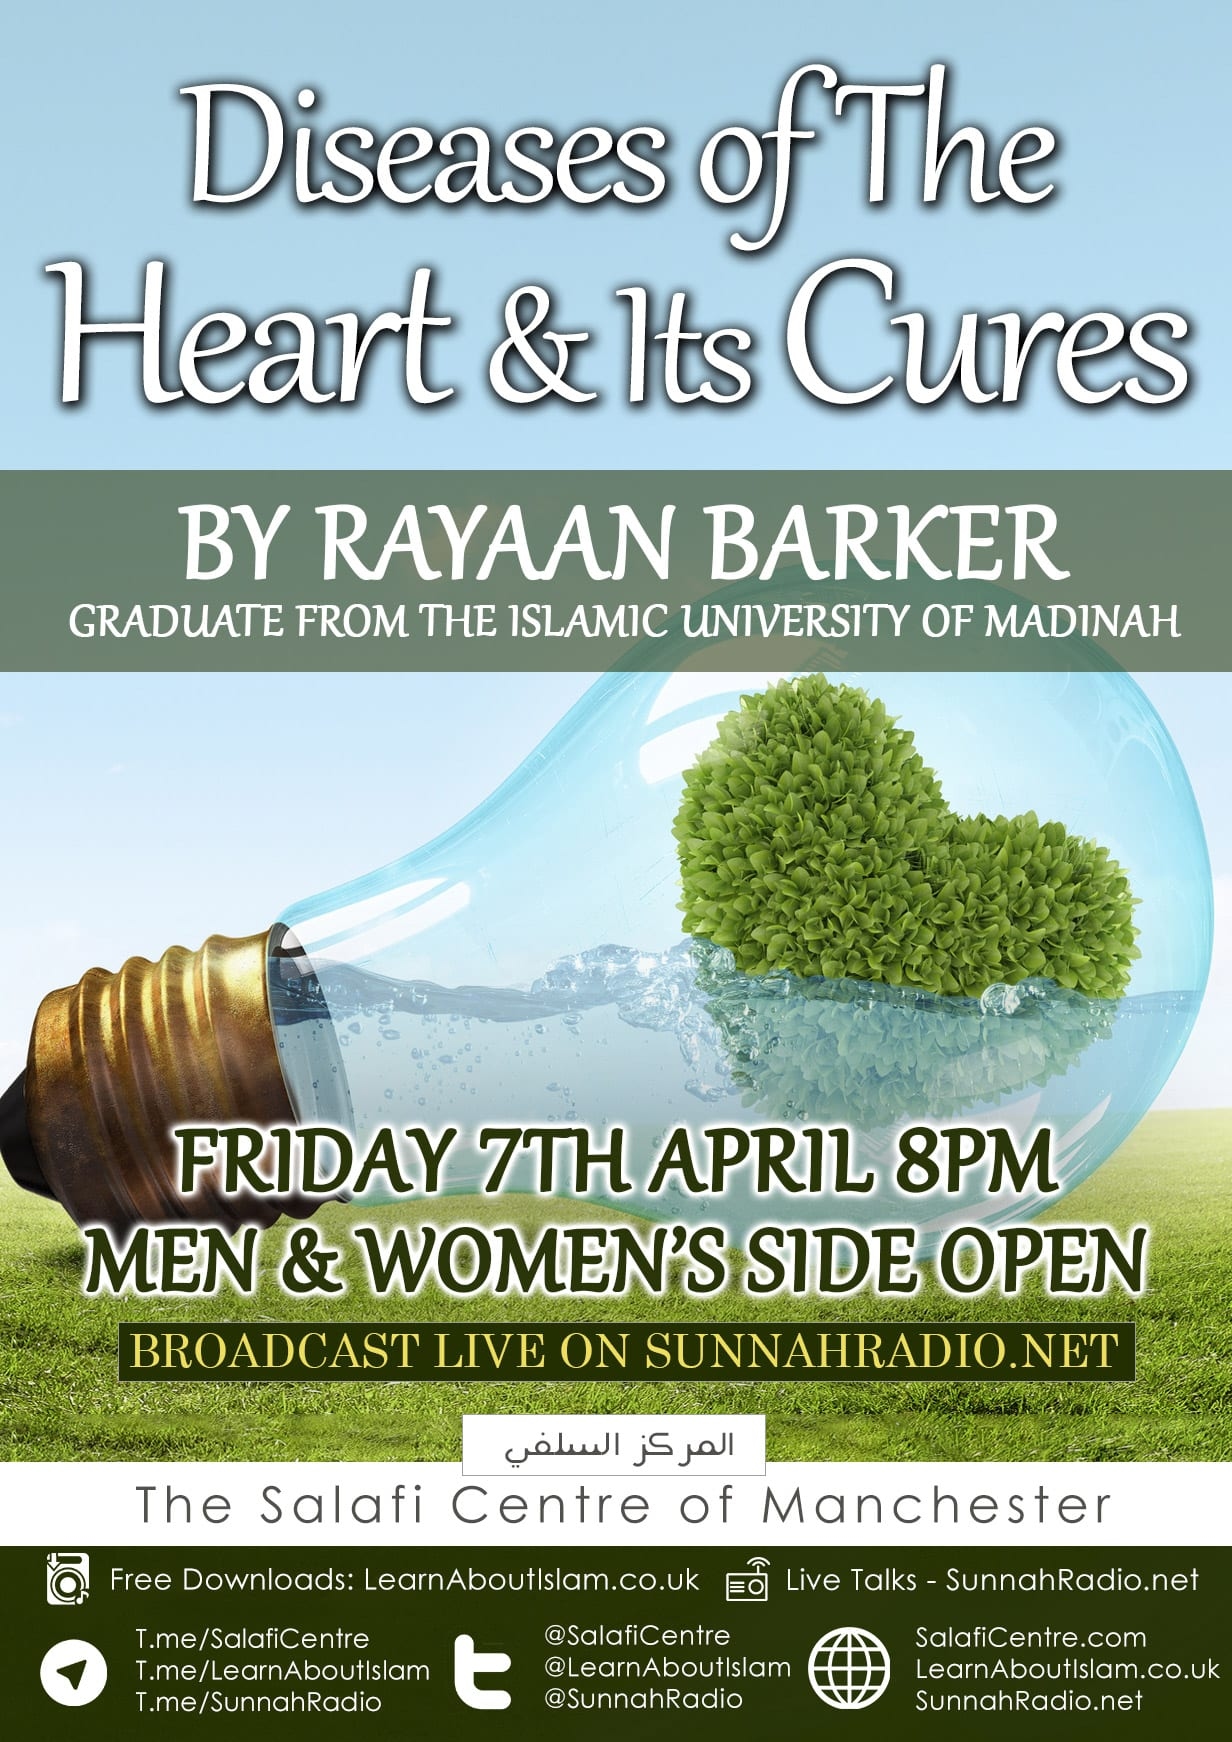 Diseases of The Heart & Its Cures by Rayaan Barker – This Friday at 8pm